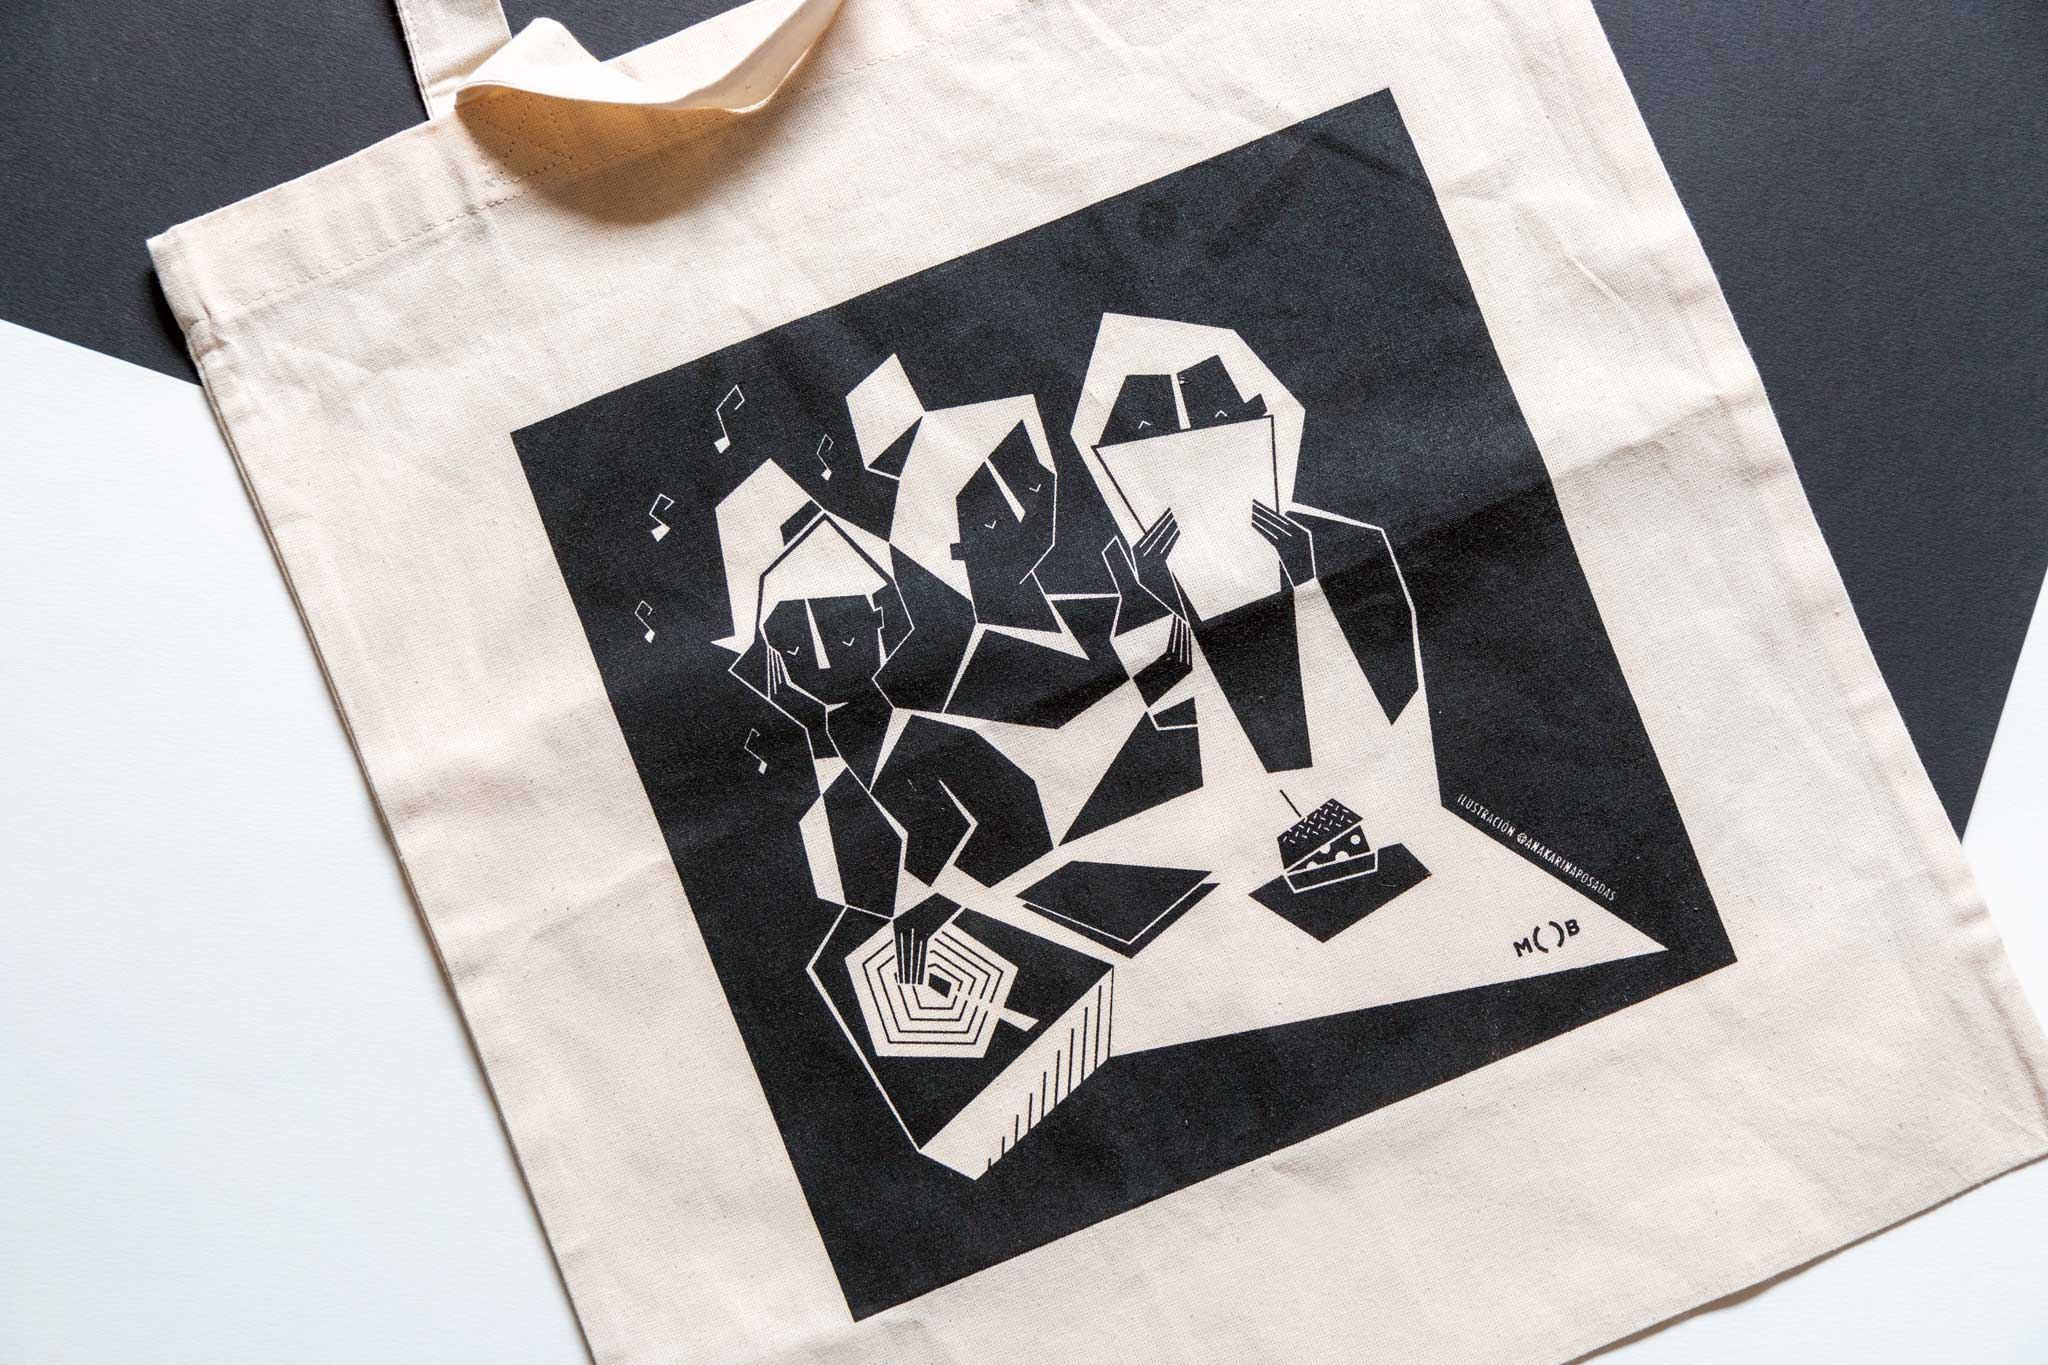 wedraw_totebag_photo©AnaKarinaPosadas